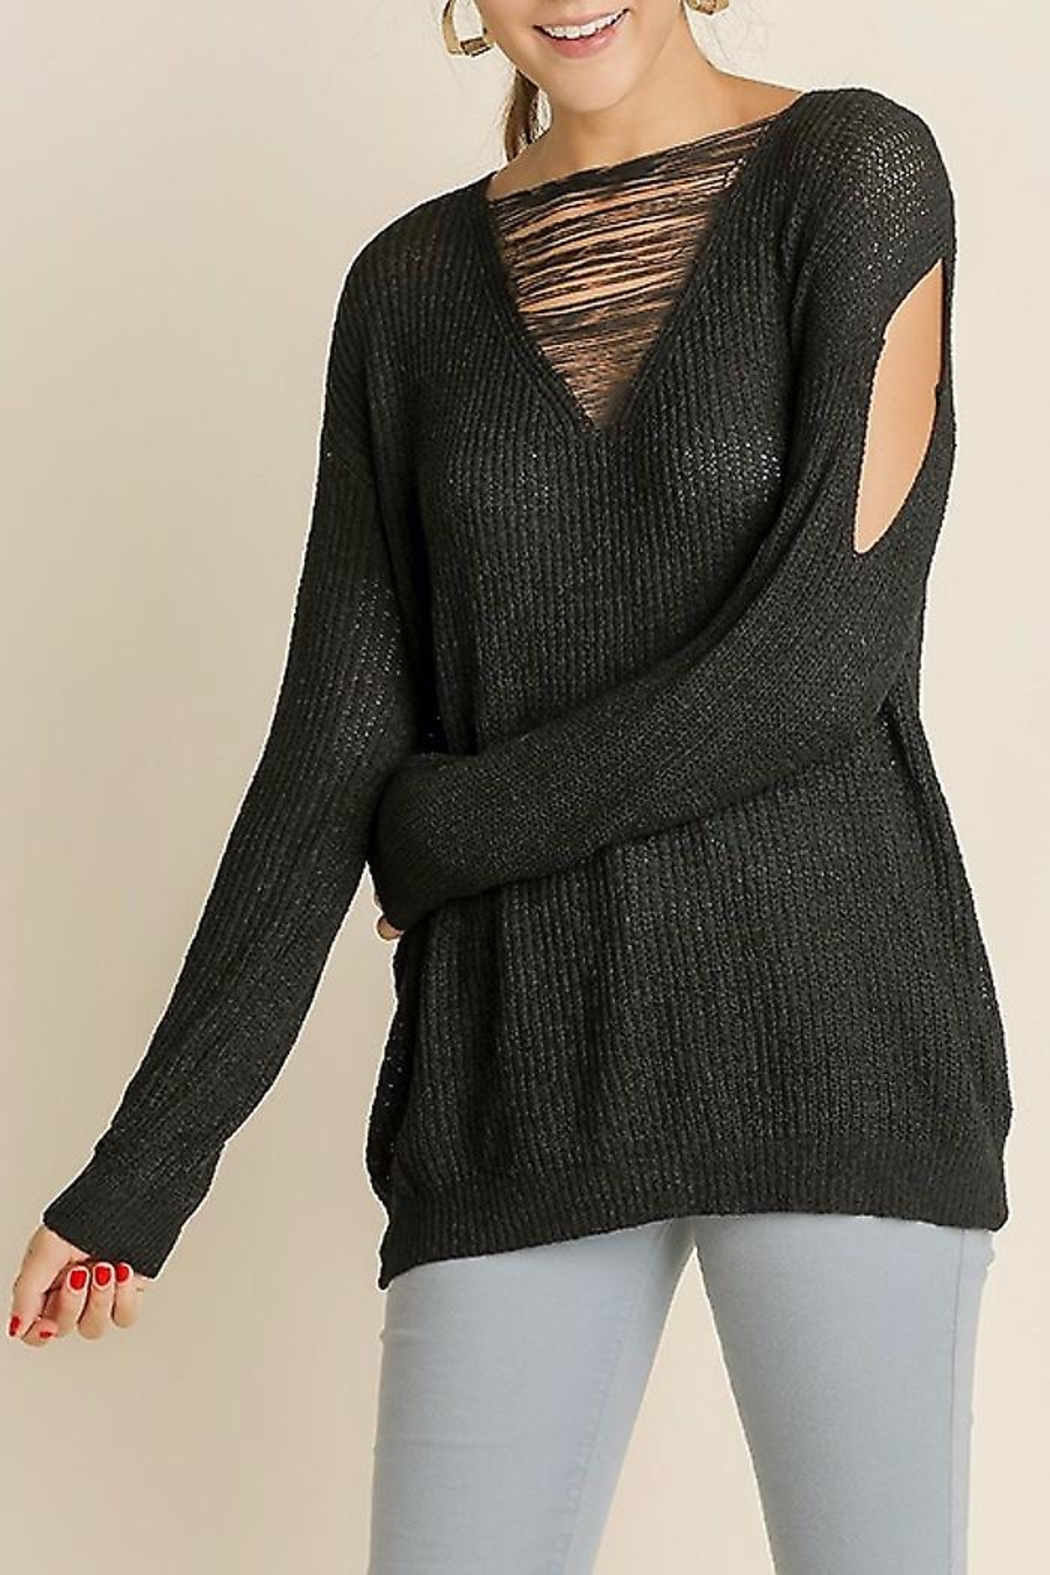 People Outfitter Distressed Knit Sweater - Main Image